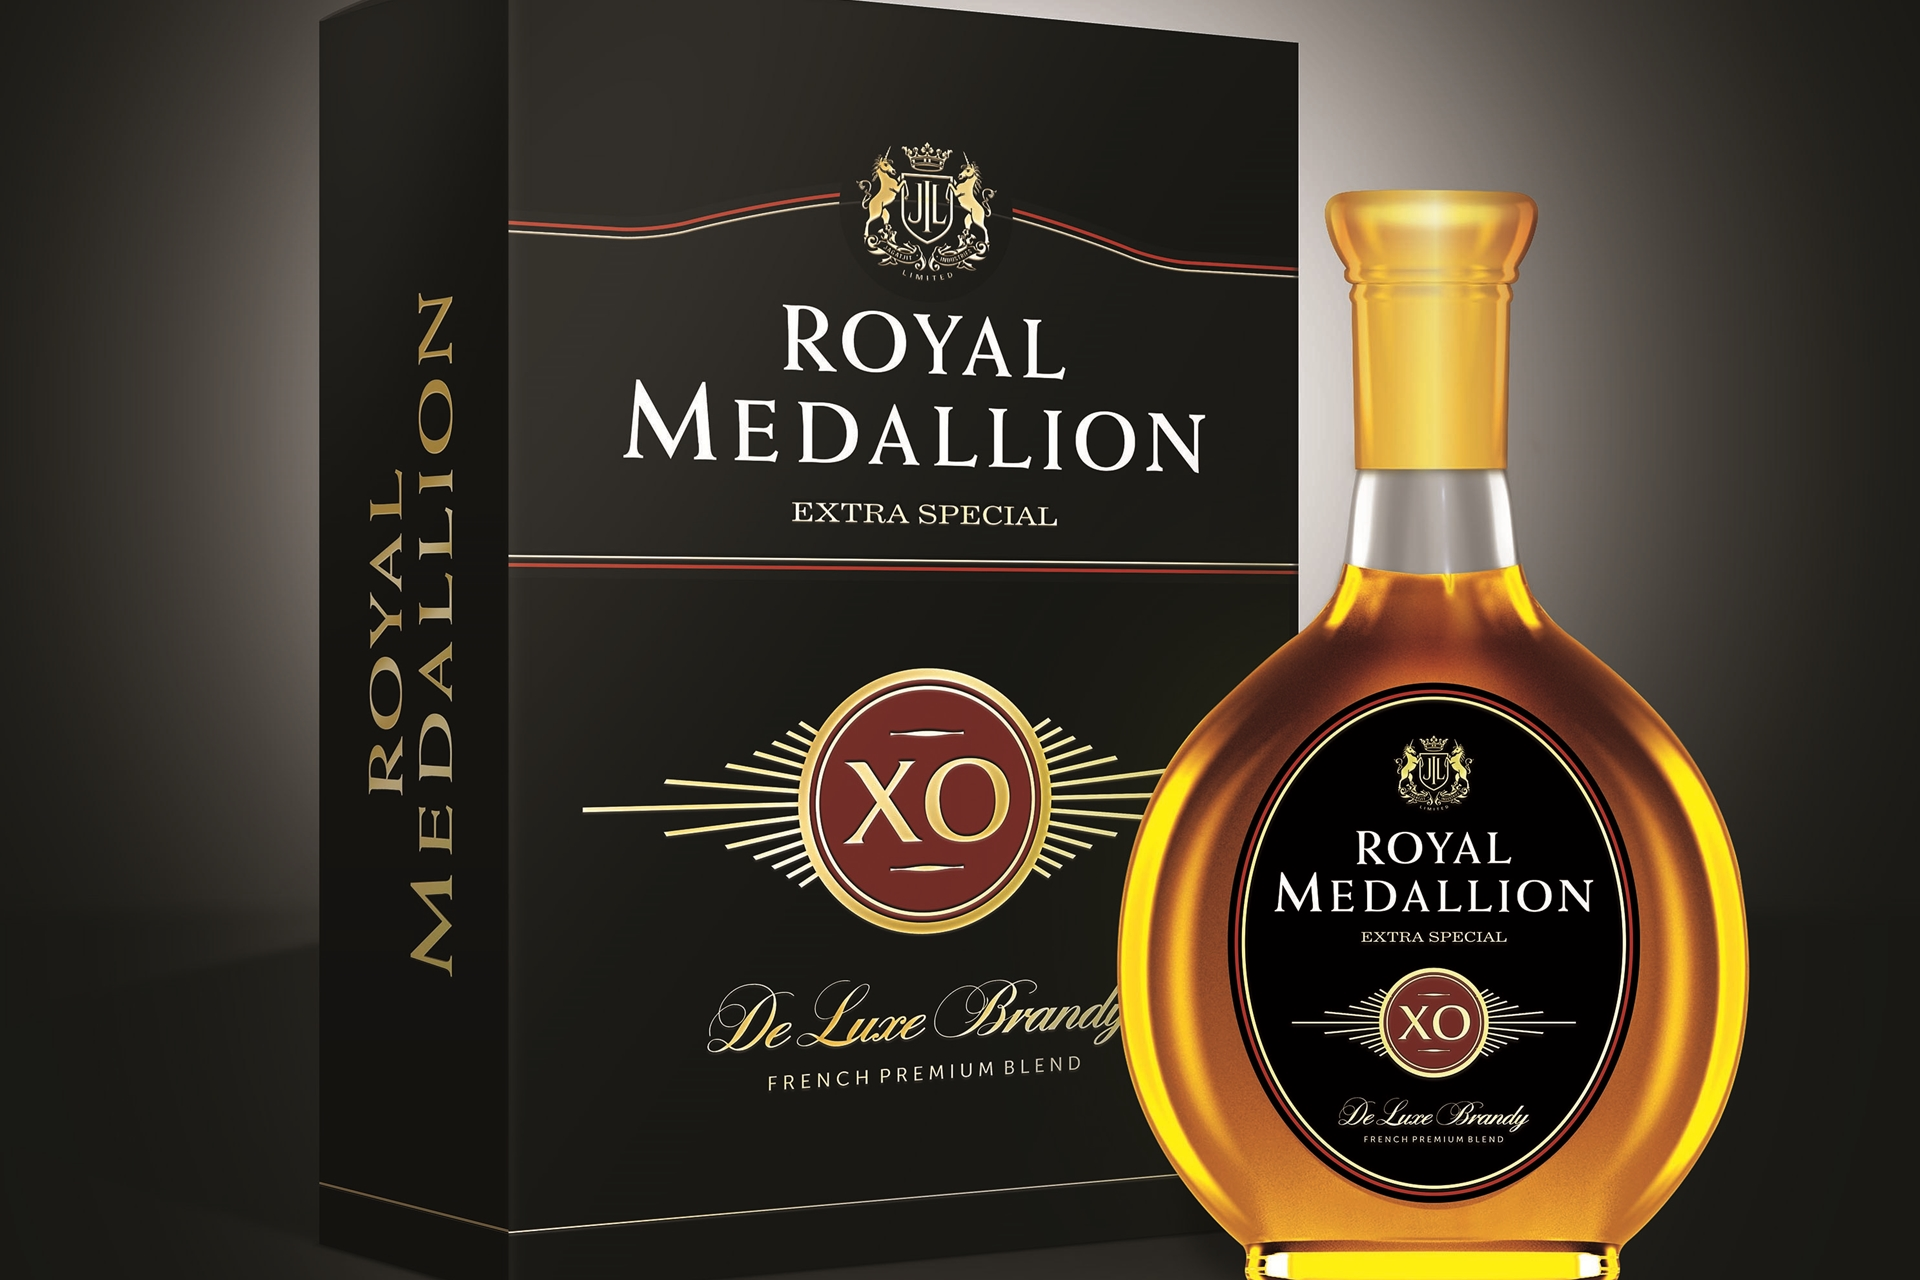 Royal Medallion